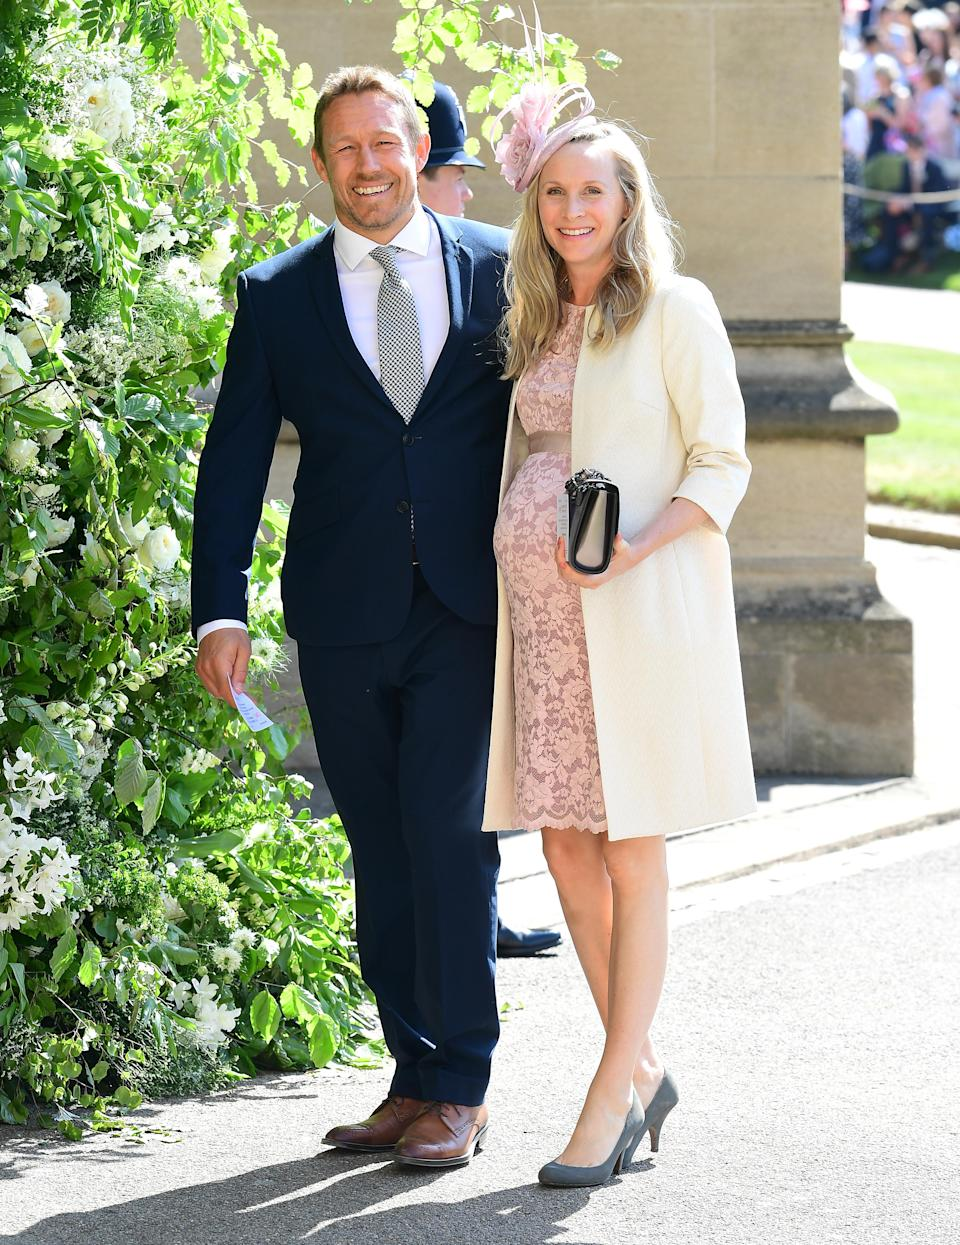 Jonny Wilkinson and Shelley Jenkins arrive at St George's Chapel at Windsor Castle for the wedding of Meghan Markle and Prince Harry (Picture: PA)